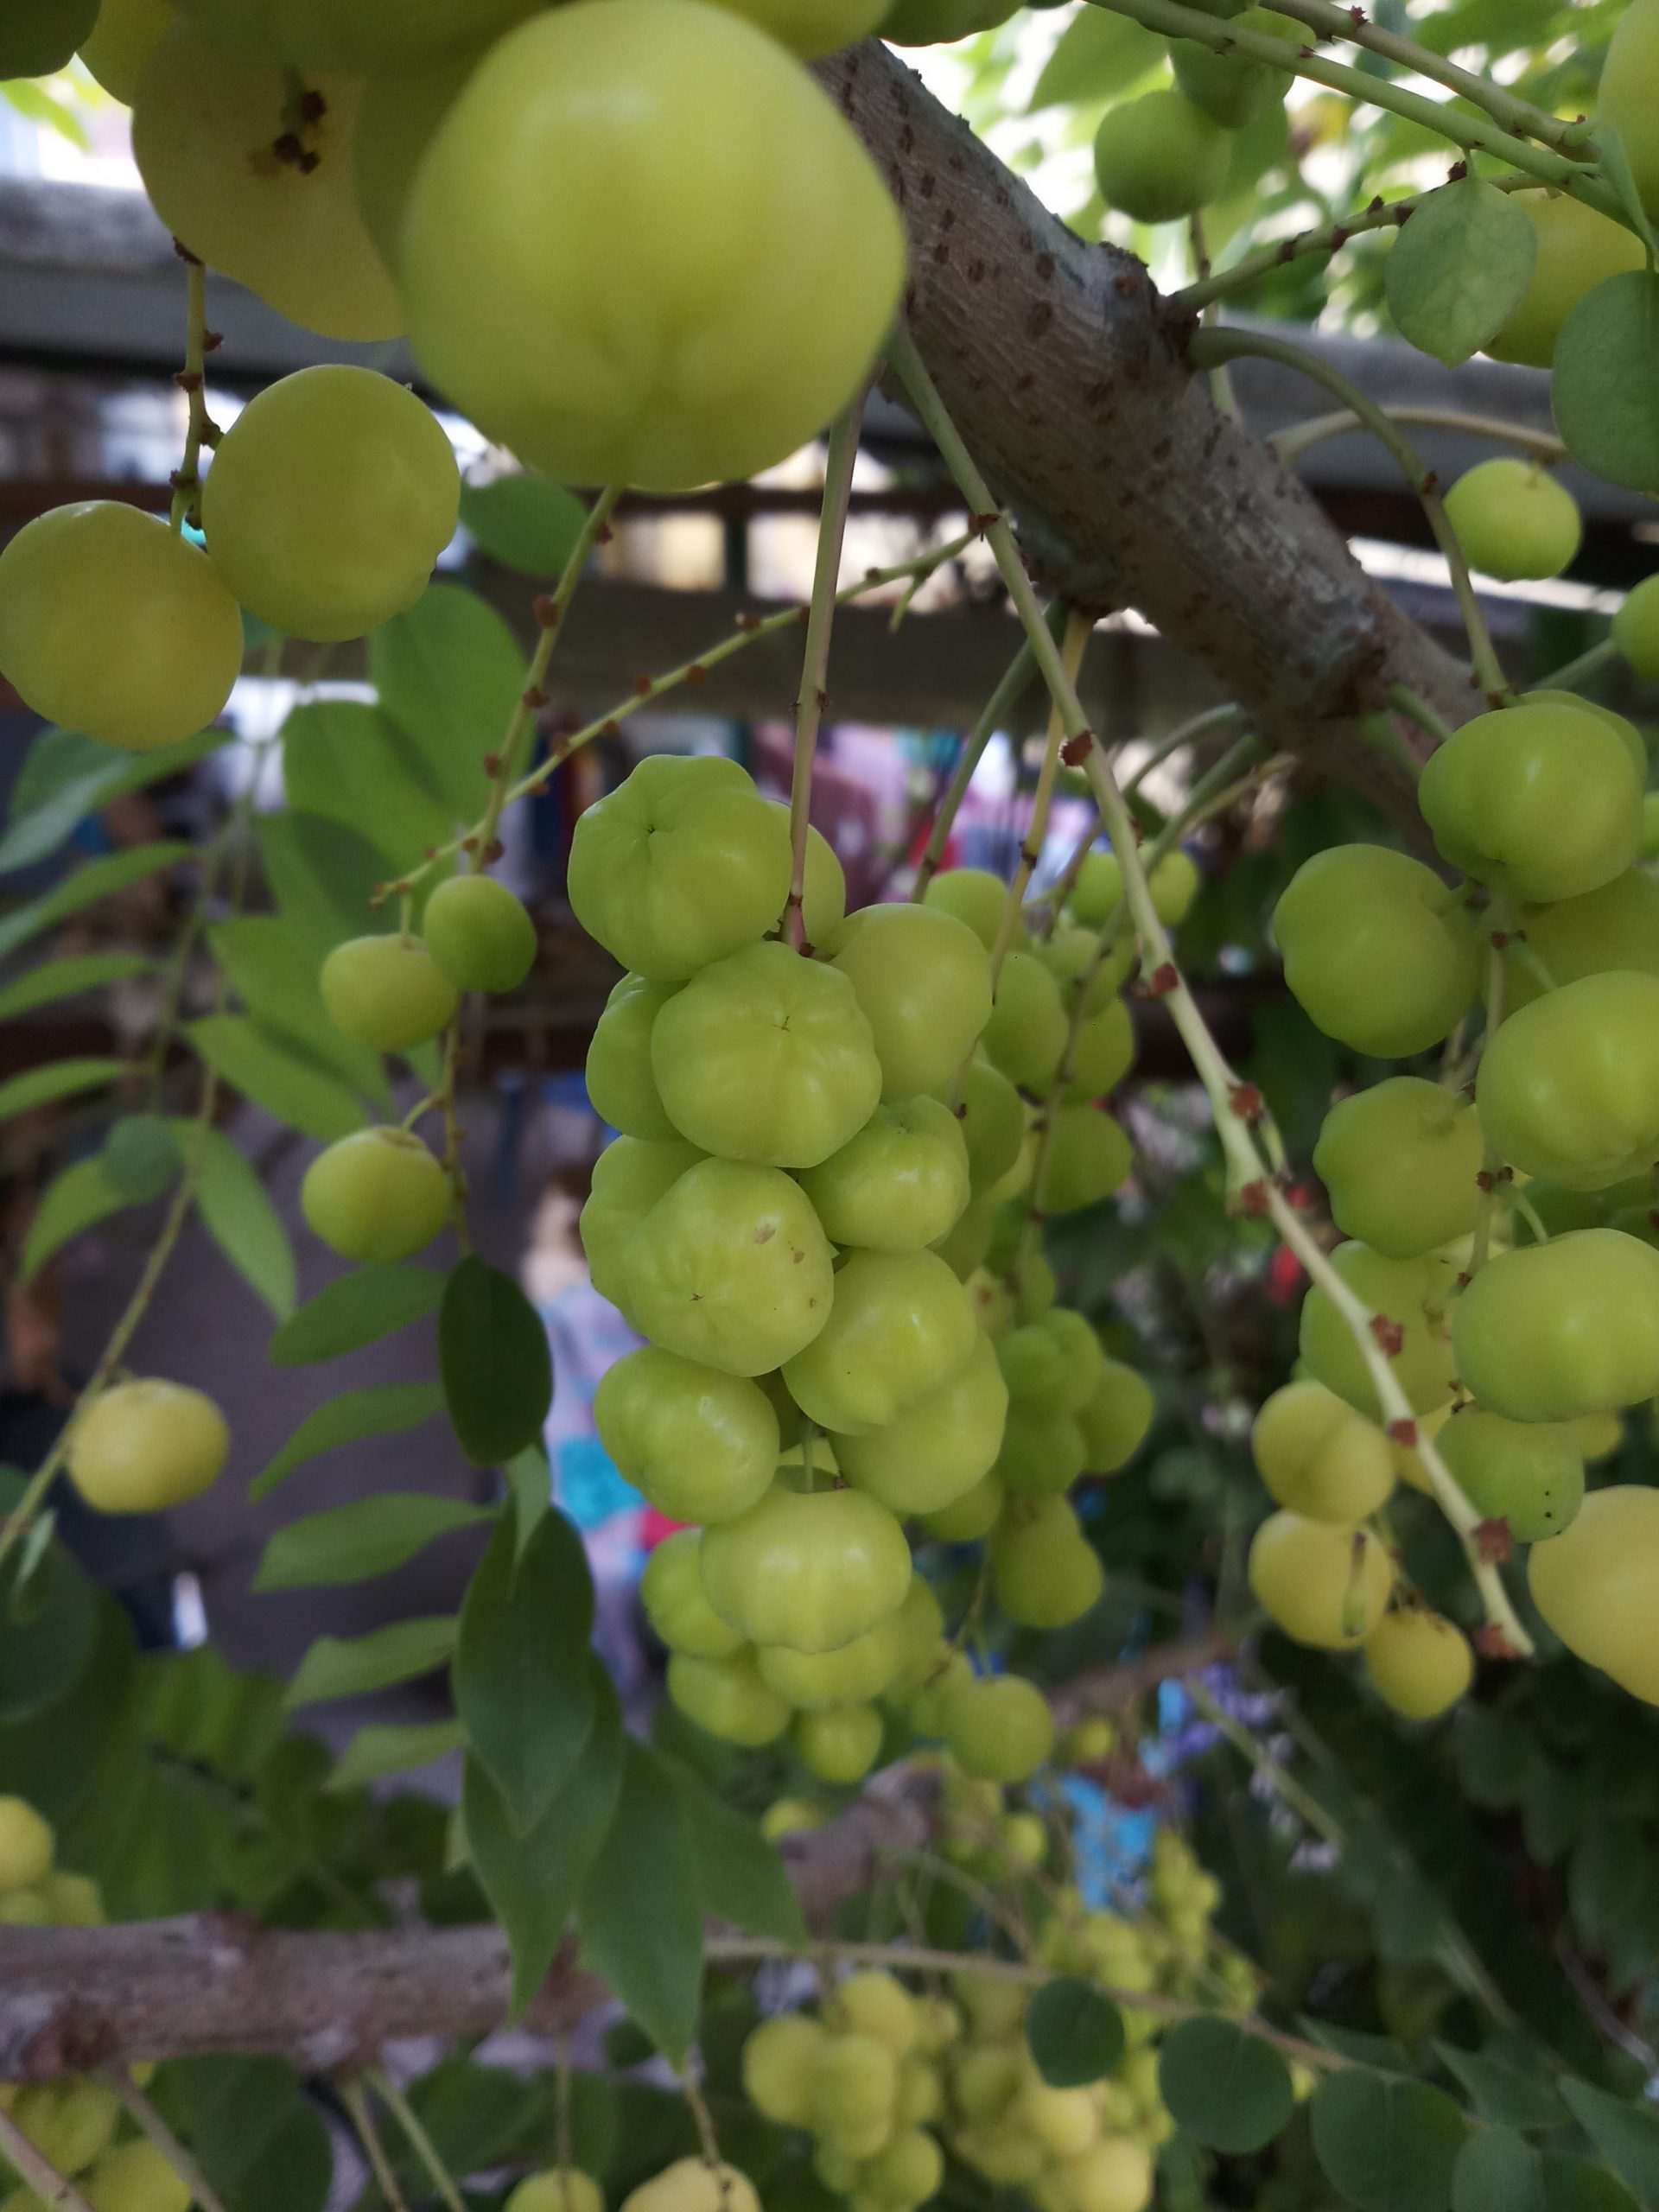 Gooseberries on a plant